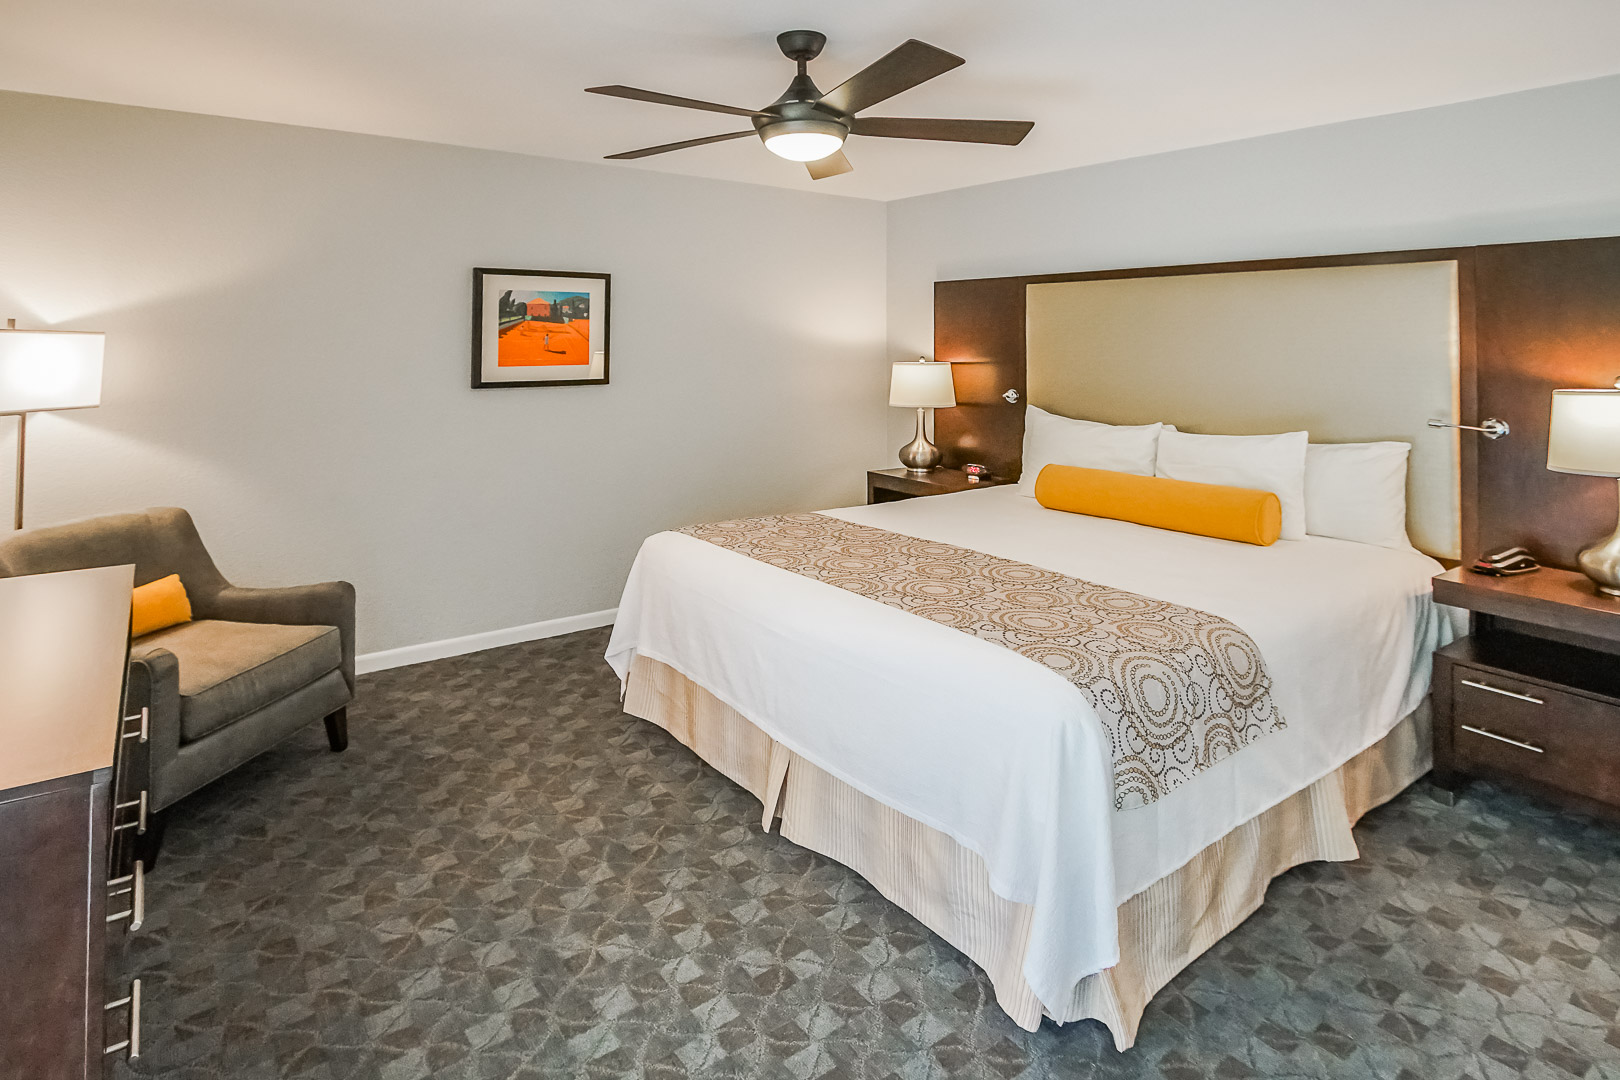 An expansive master bedroom with a king size bed at VRI's Palm Springs Tennis Club in California.